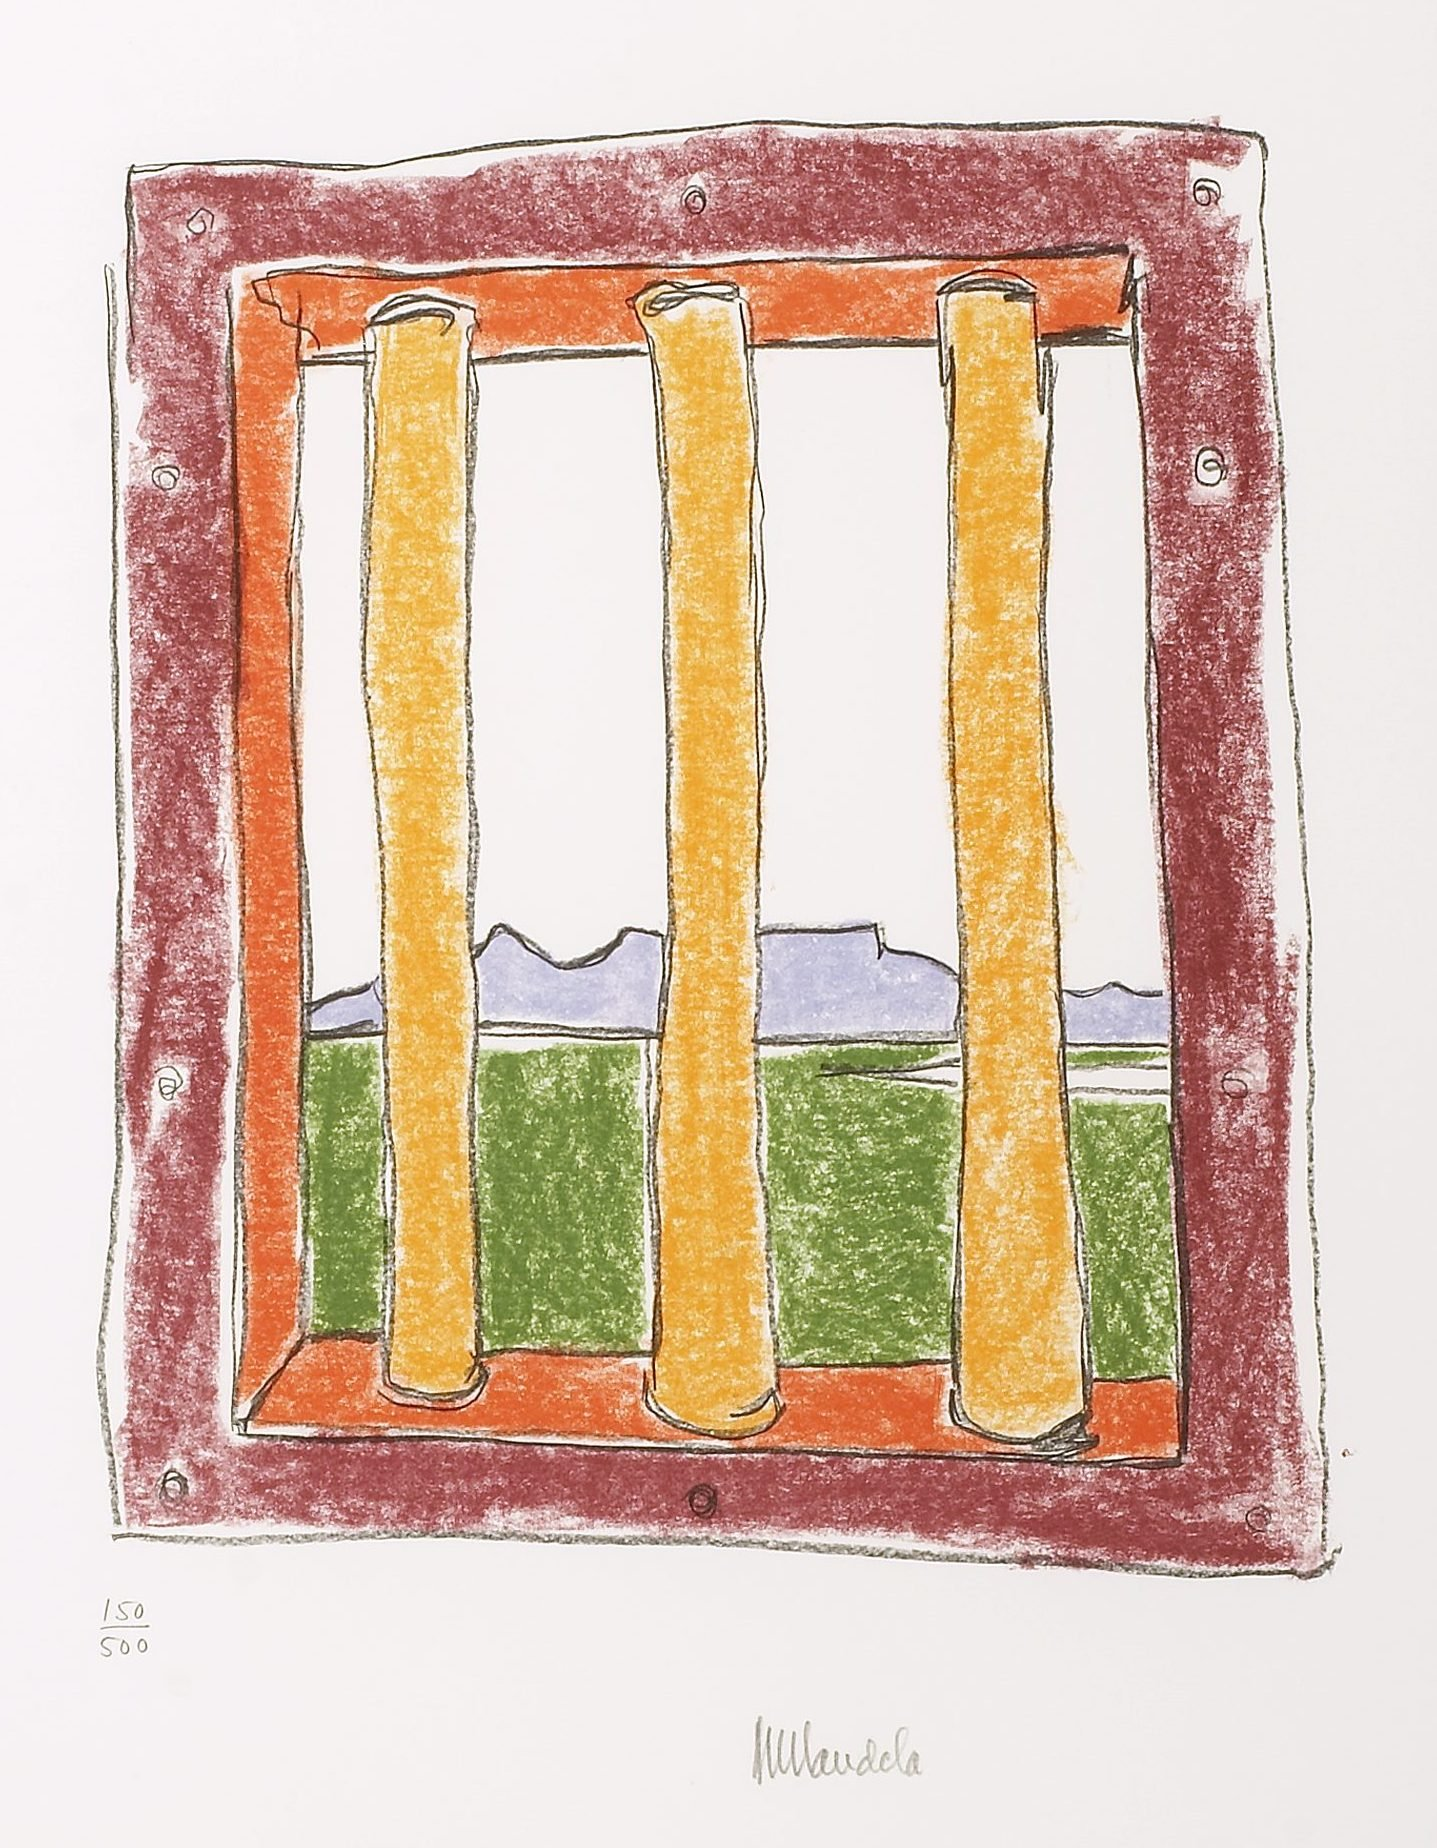 A colourful pastel drawing of a view through a barred window.